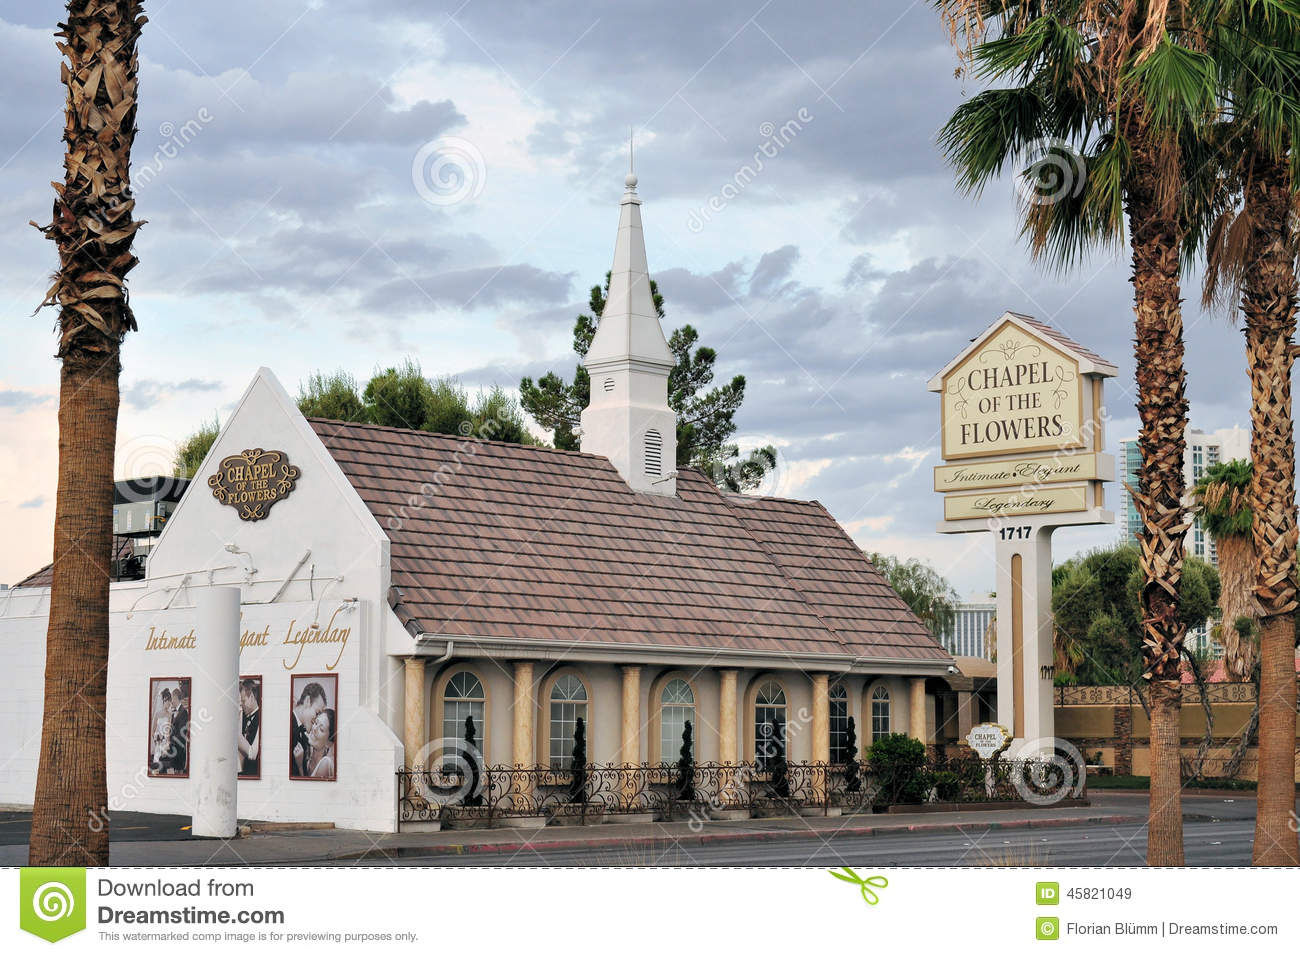 contact us vegas wedding chapels Viva Las Vegas Wedding Chapels is Located at Las Vegas Blvd South Las Vegas Nevada